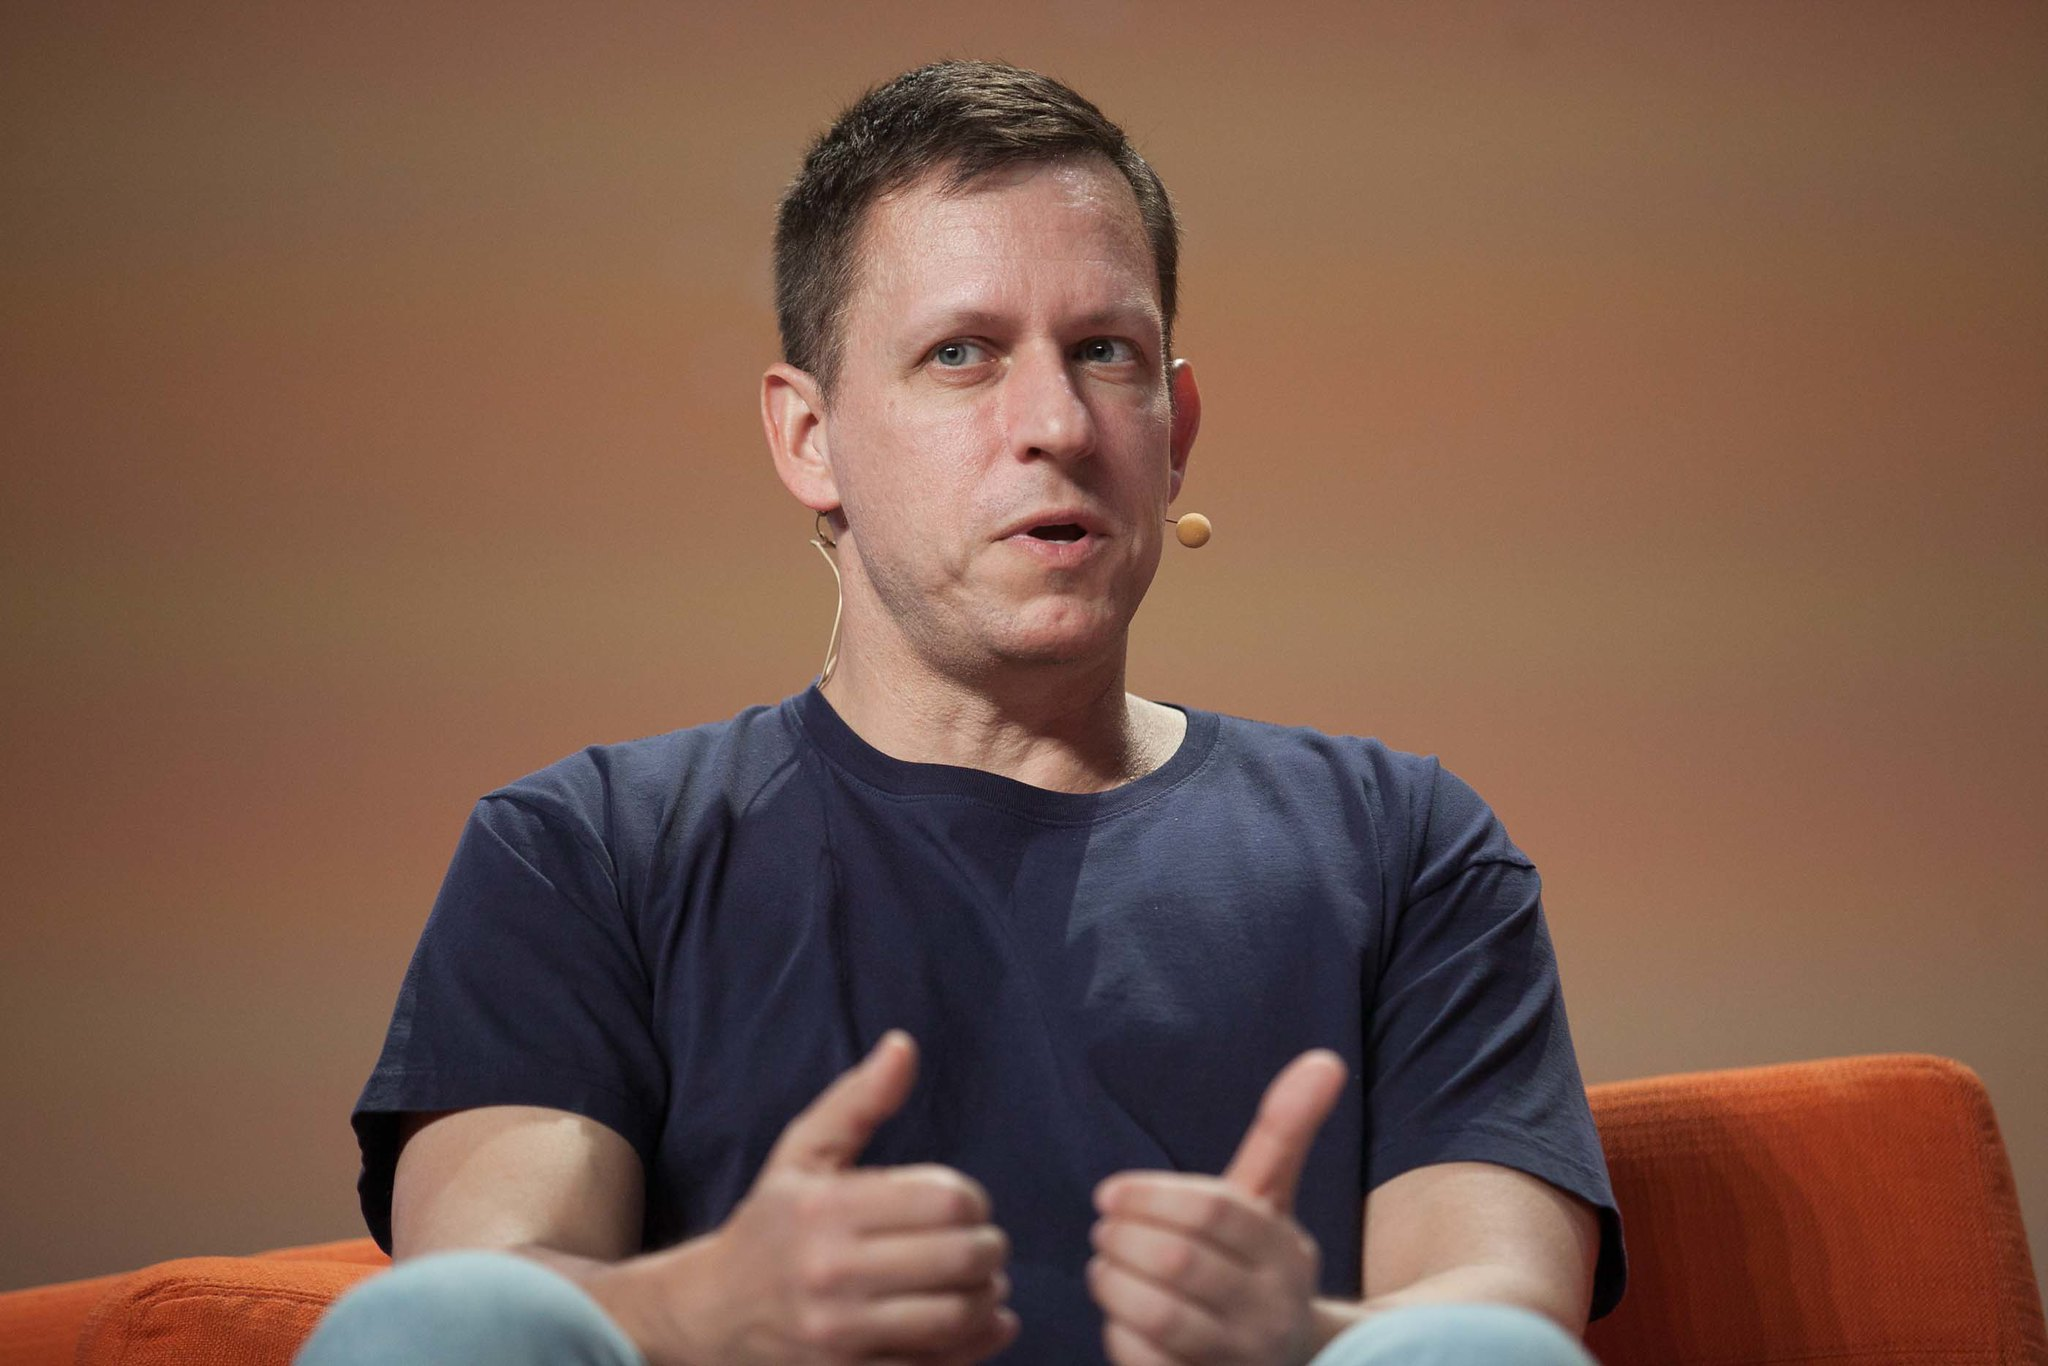 Peter Thiel loves power laws